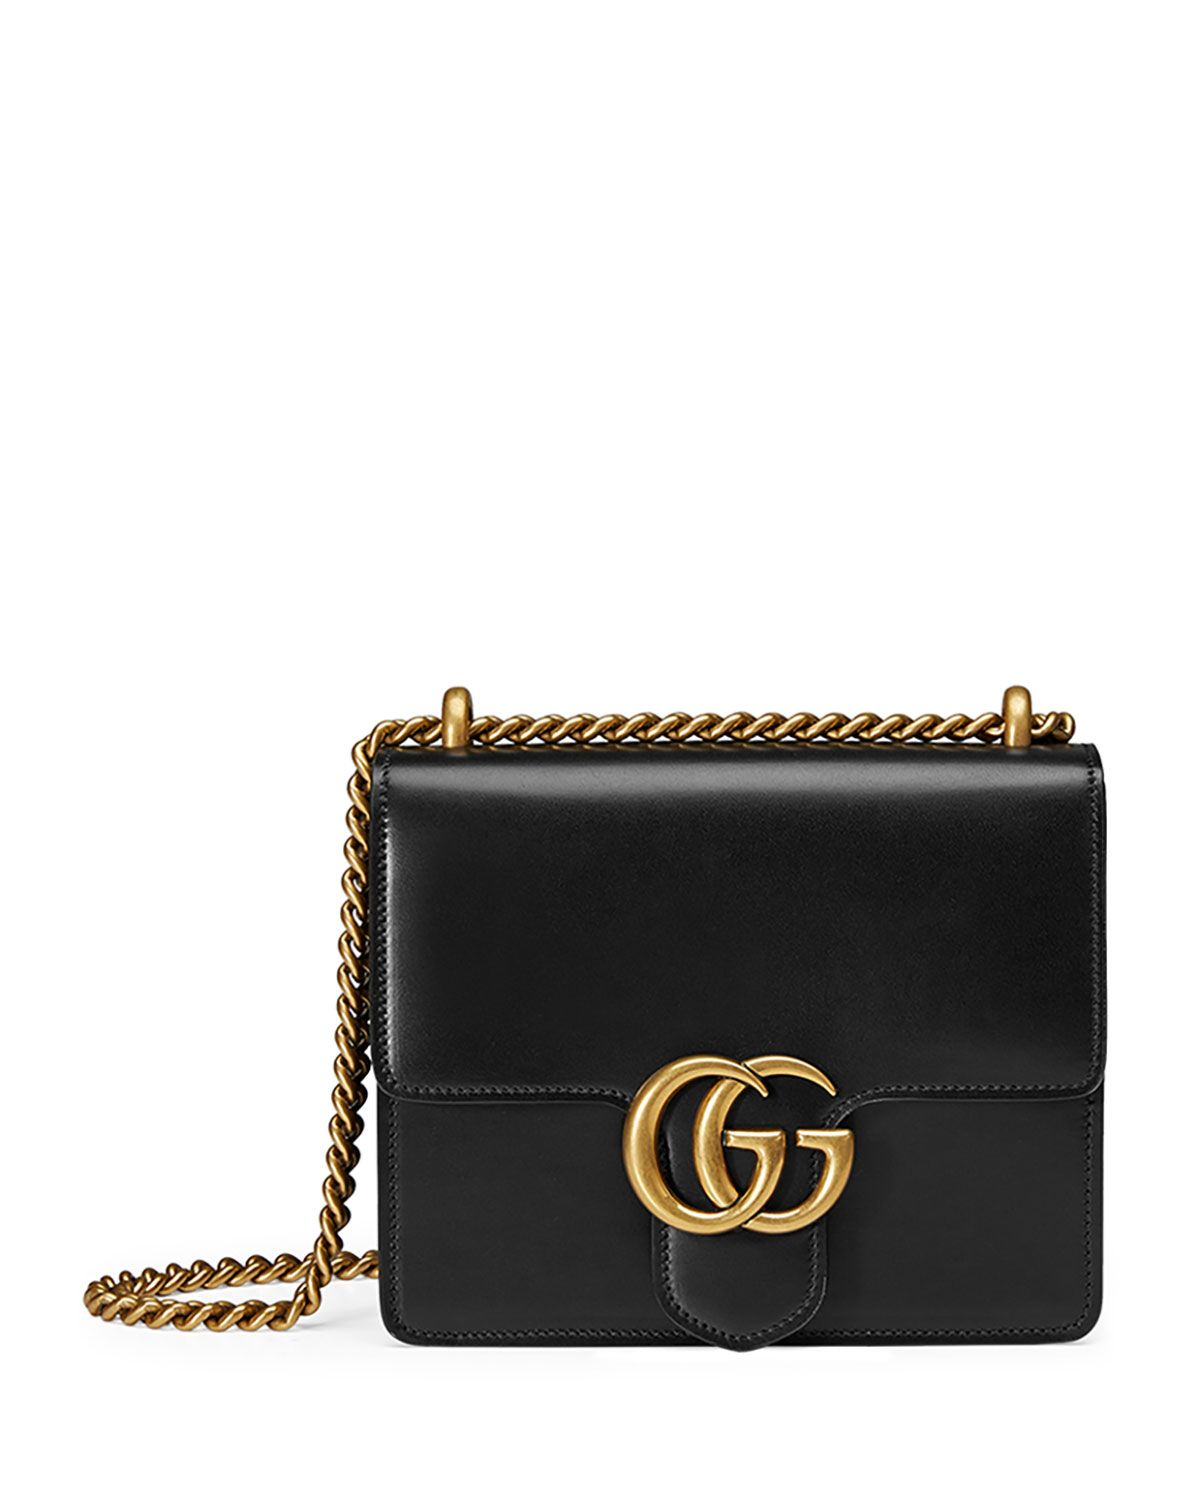 Gucci GG Marmont Small Leather Shoulder Bag 5f9aecf944